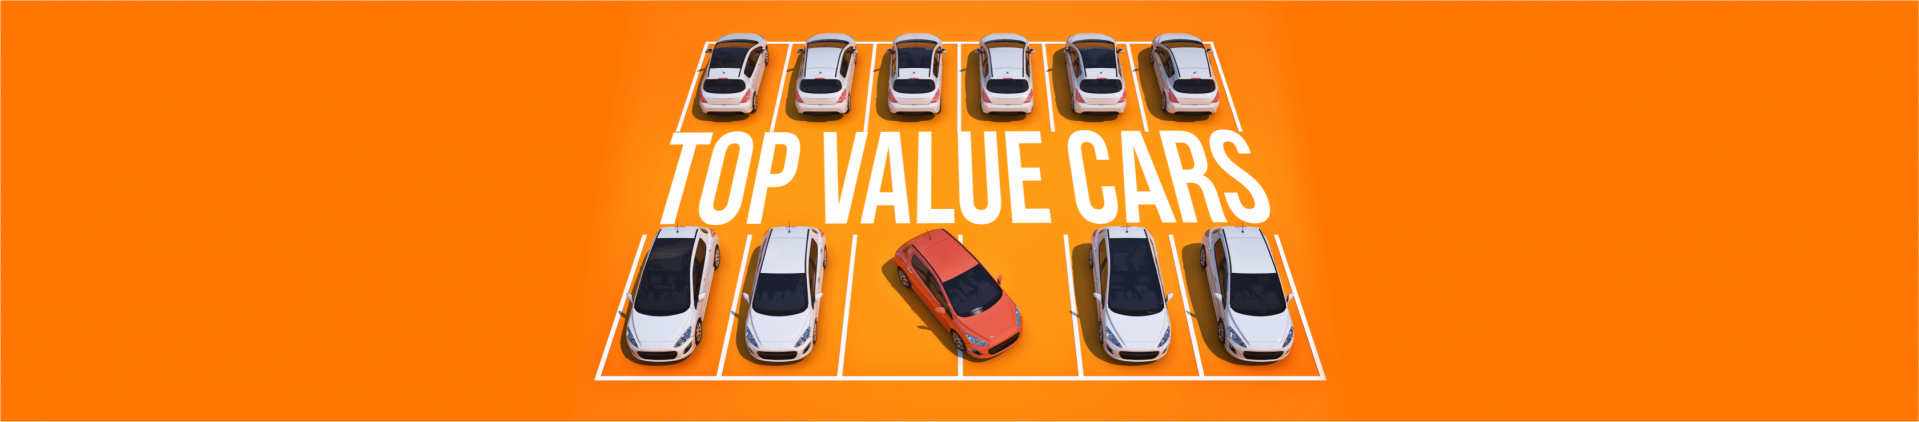 Top Value Cars